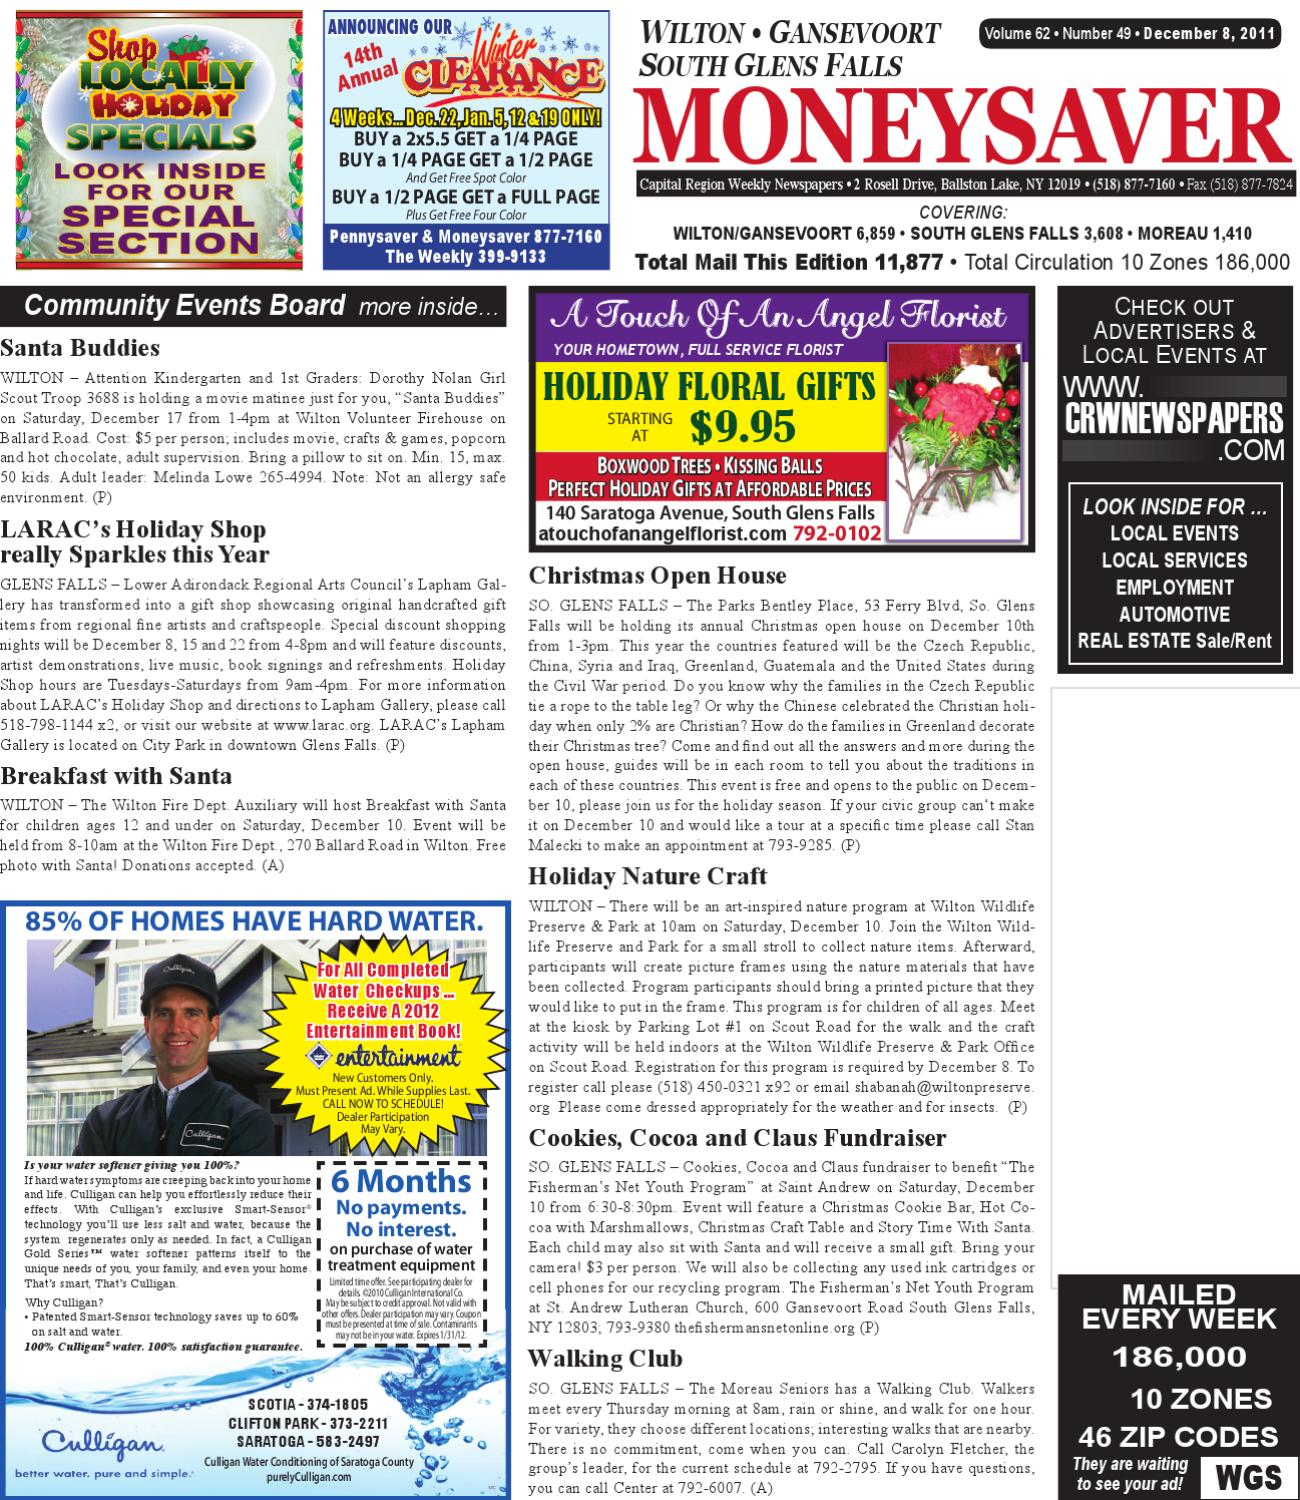 wilton gansevoort sgf moneysaver by capital region weekly